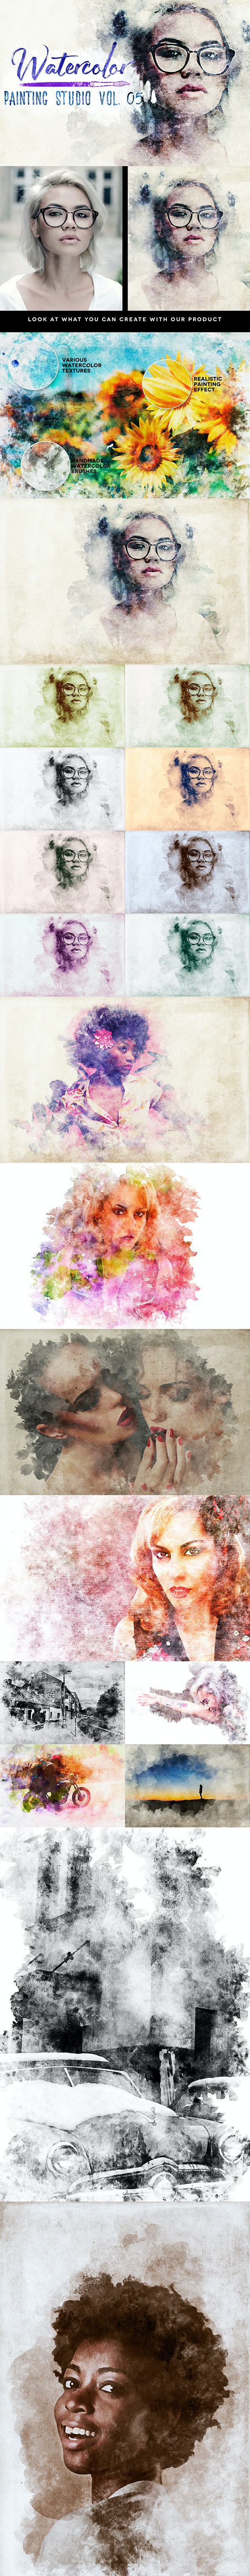 Watercolor Painting Studio Vol. 05 - Photoshop Add-ons